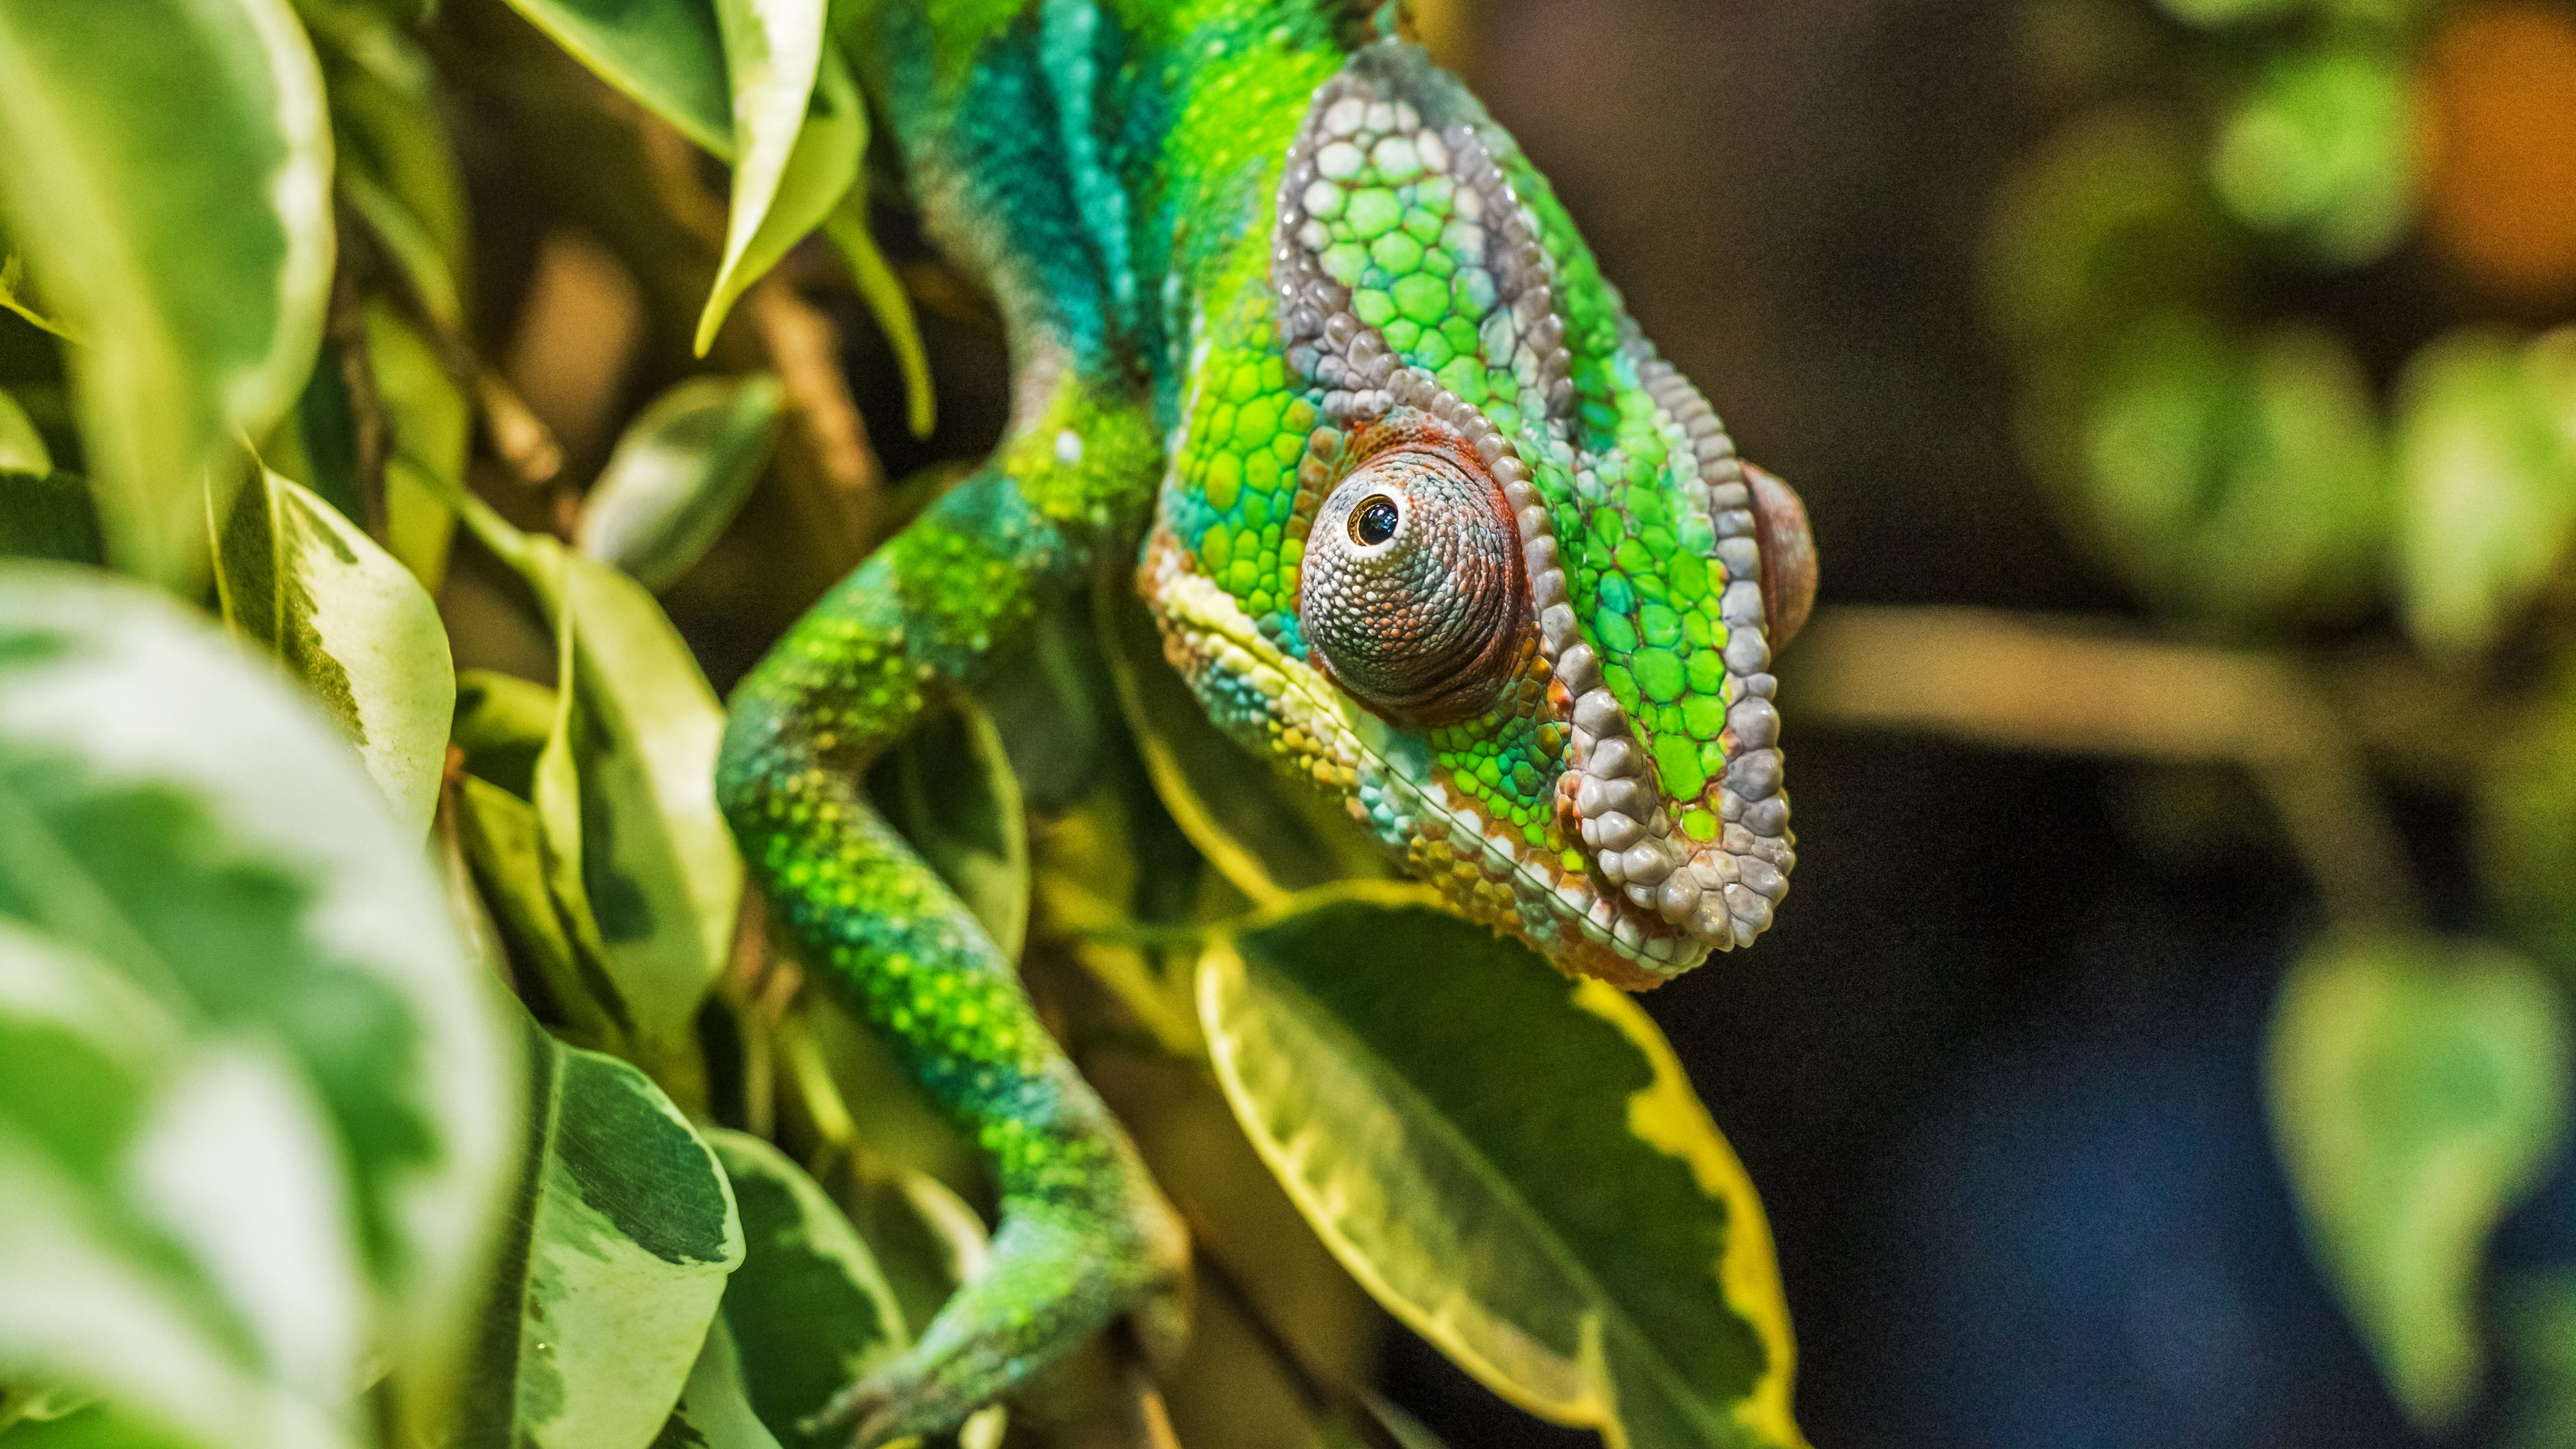 Chameleon Wallpapers, Pictures, Image